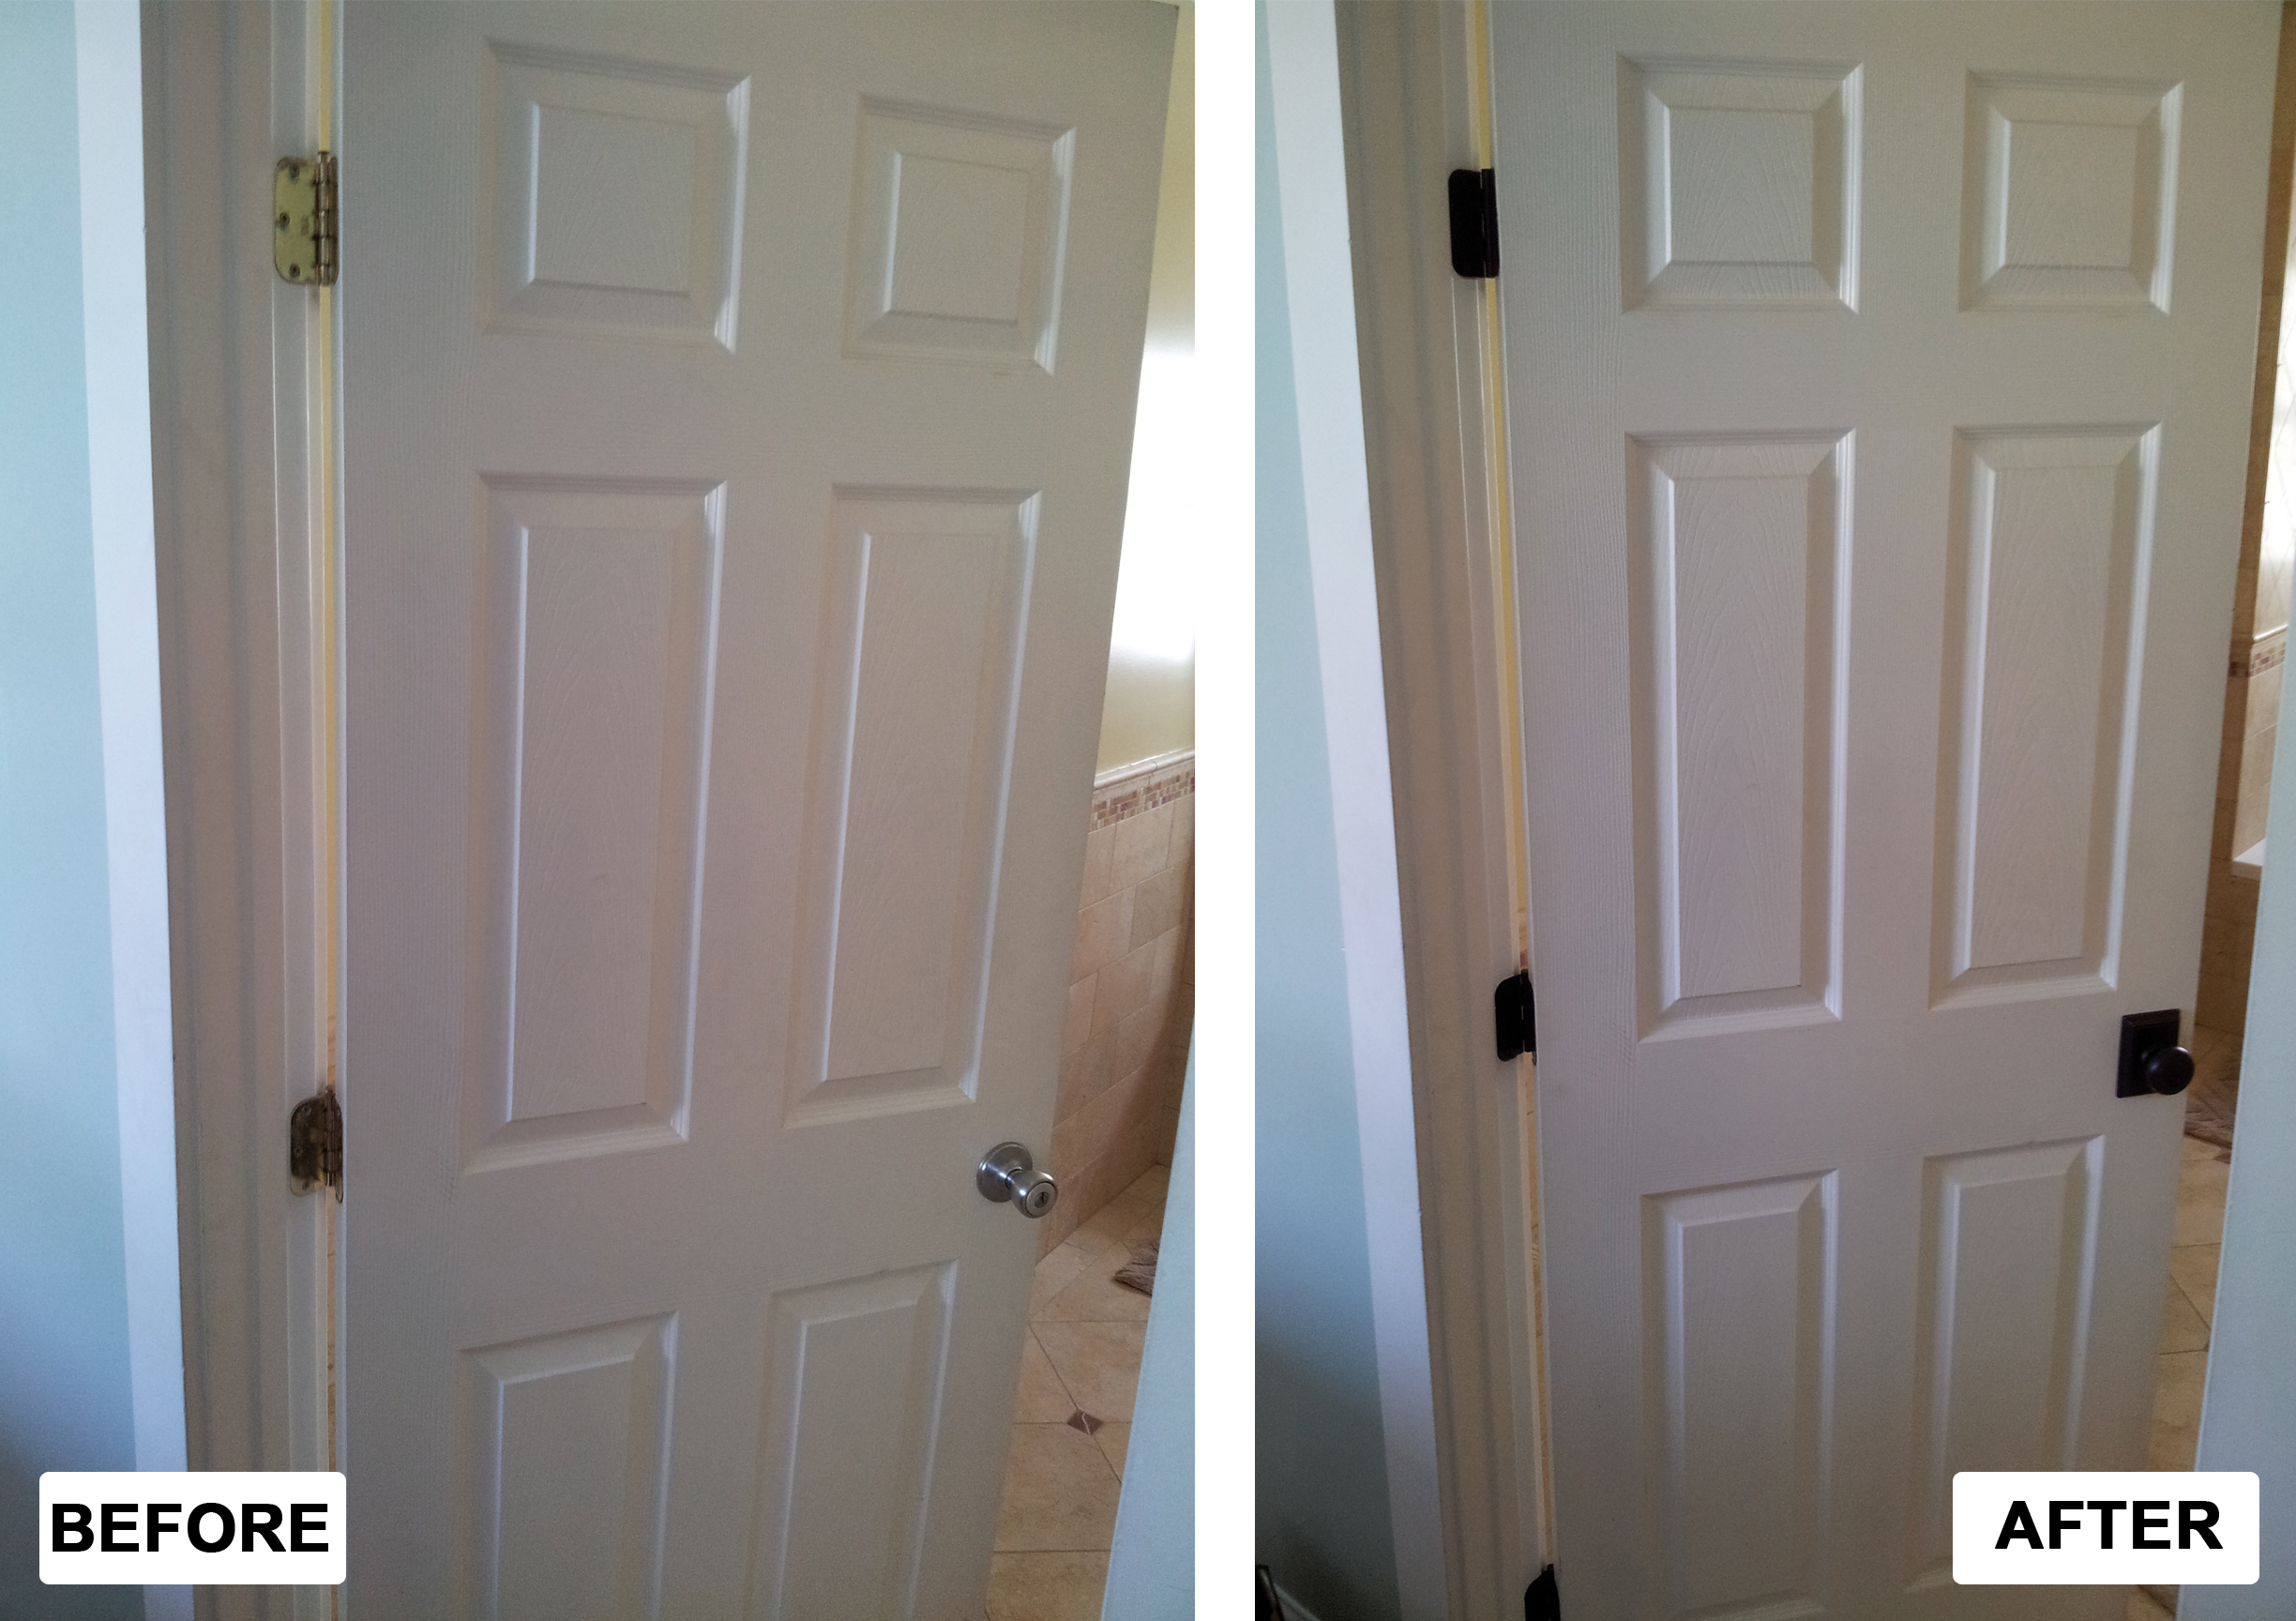 Before & After Doors | Meryl and Miller LLC